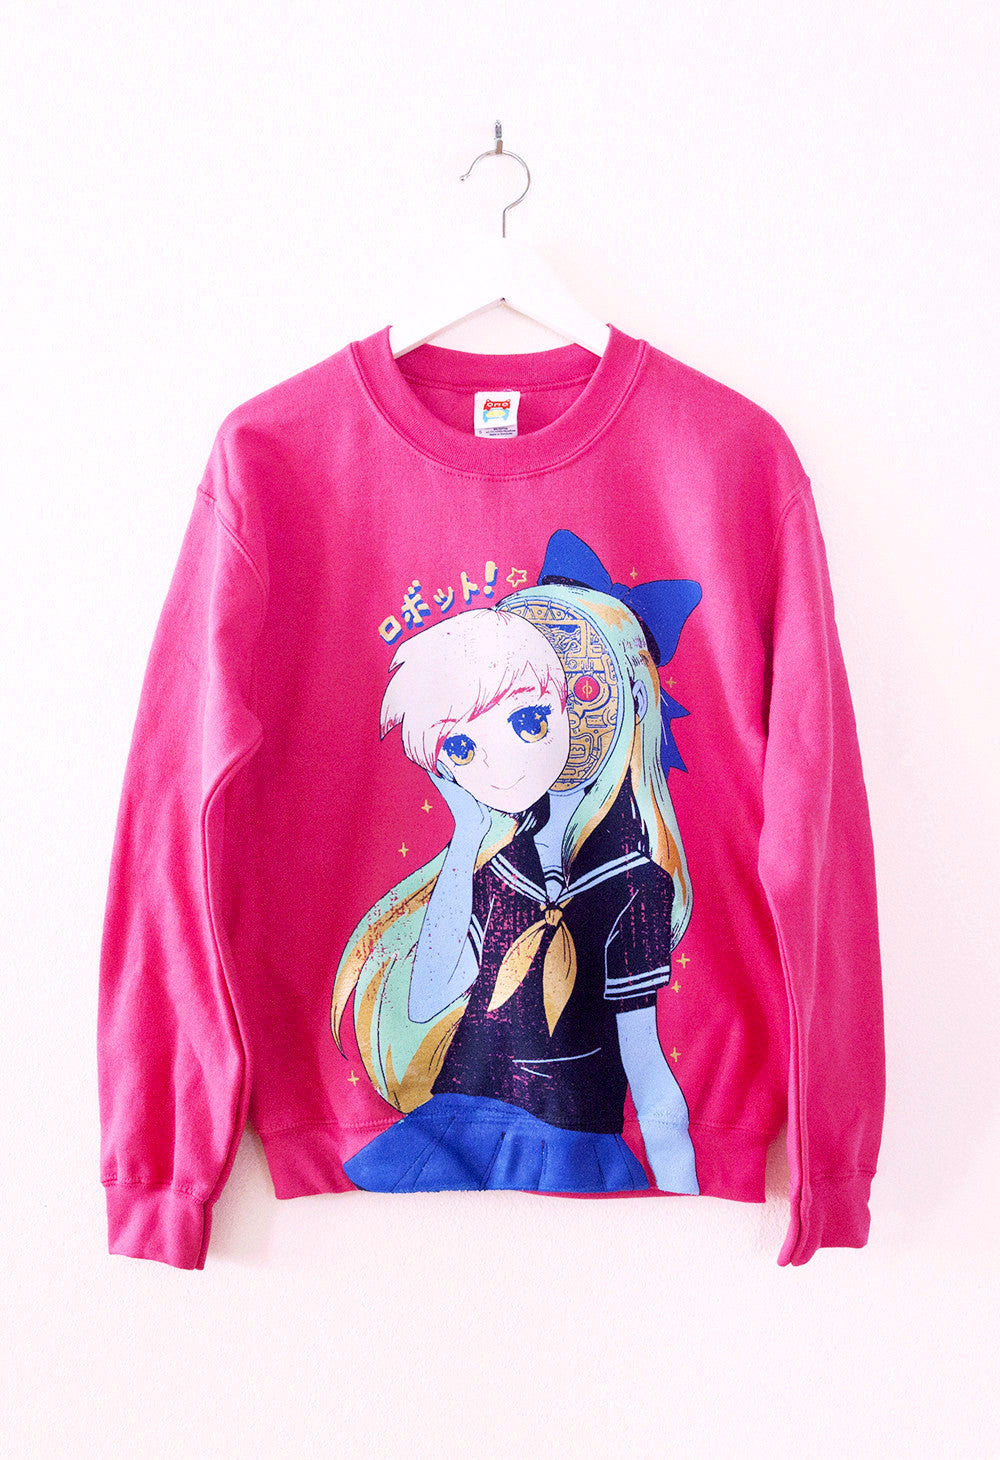 ROBOGIRL Sweater